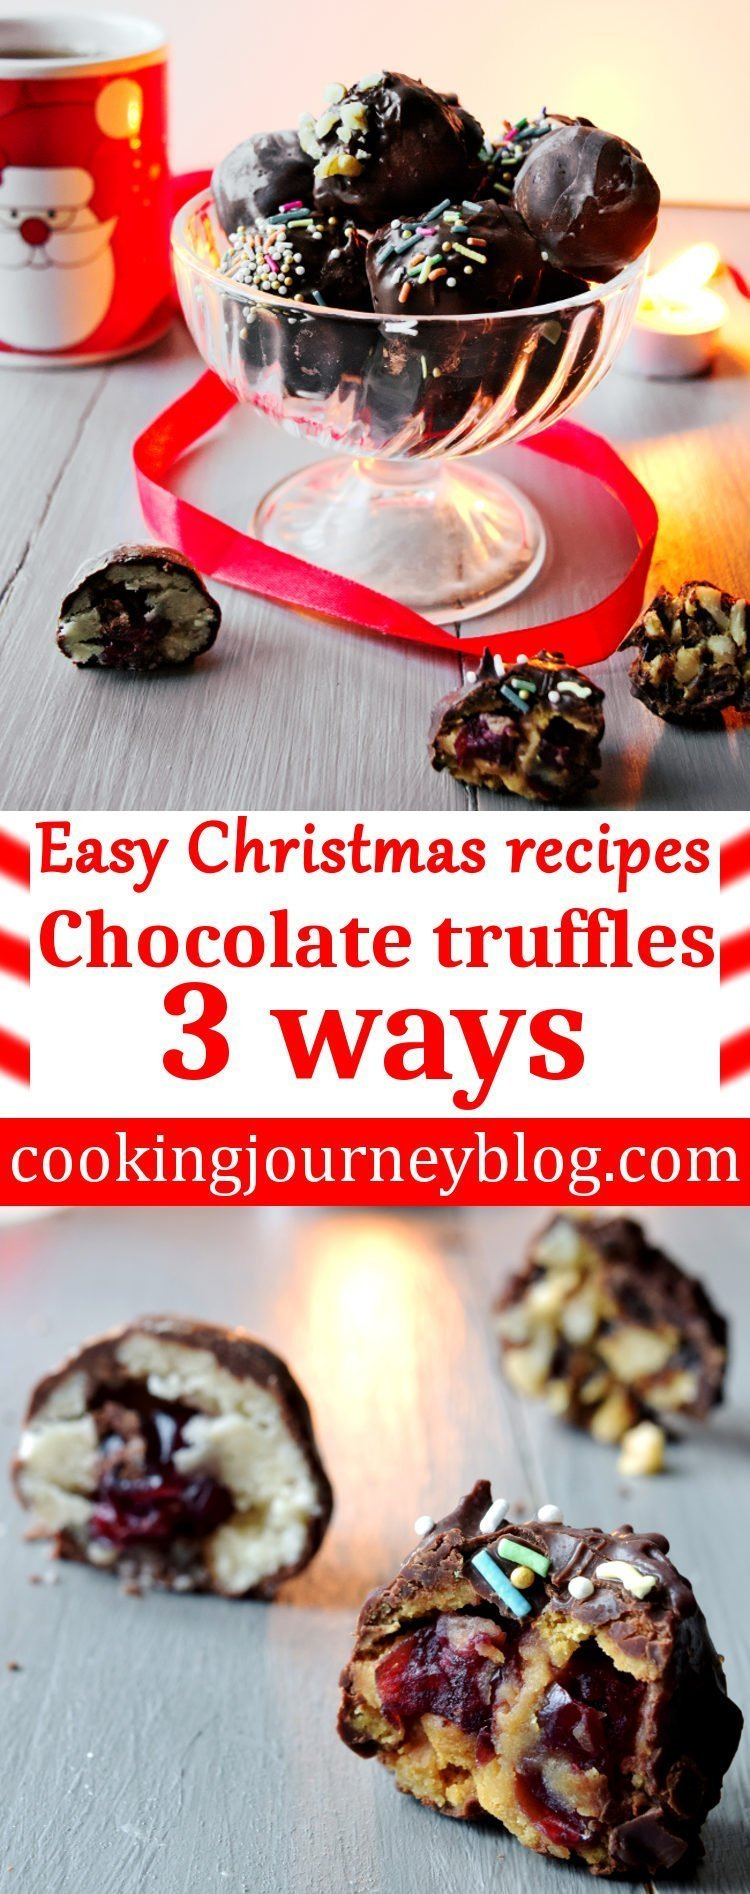 We have so much to do before Christmas, so these easy homemade truffles 3 ways will save your time, preparing your festive table or edible Christmas gifts! You will need only few ingredients, no baking and only 10 minutes to make these Christmas desserts! Truffles on the table, cut in half.